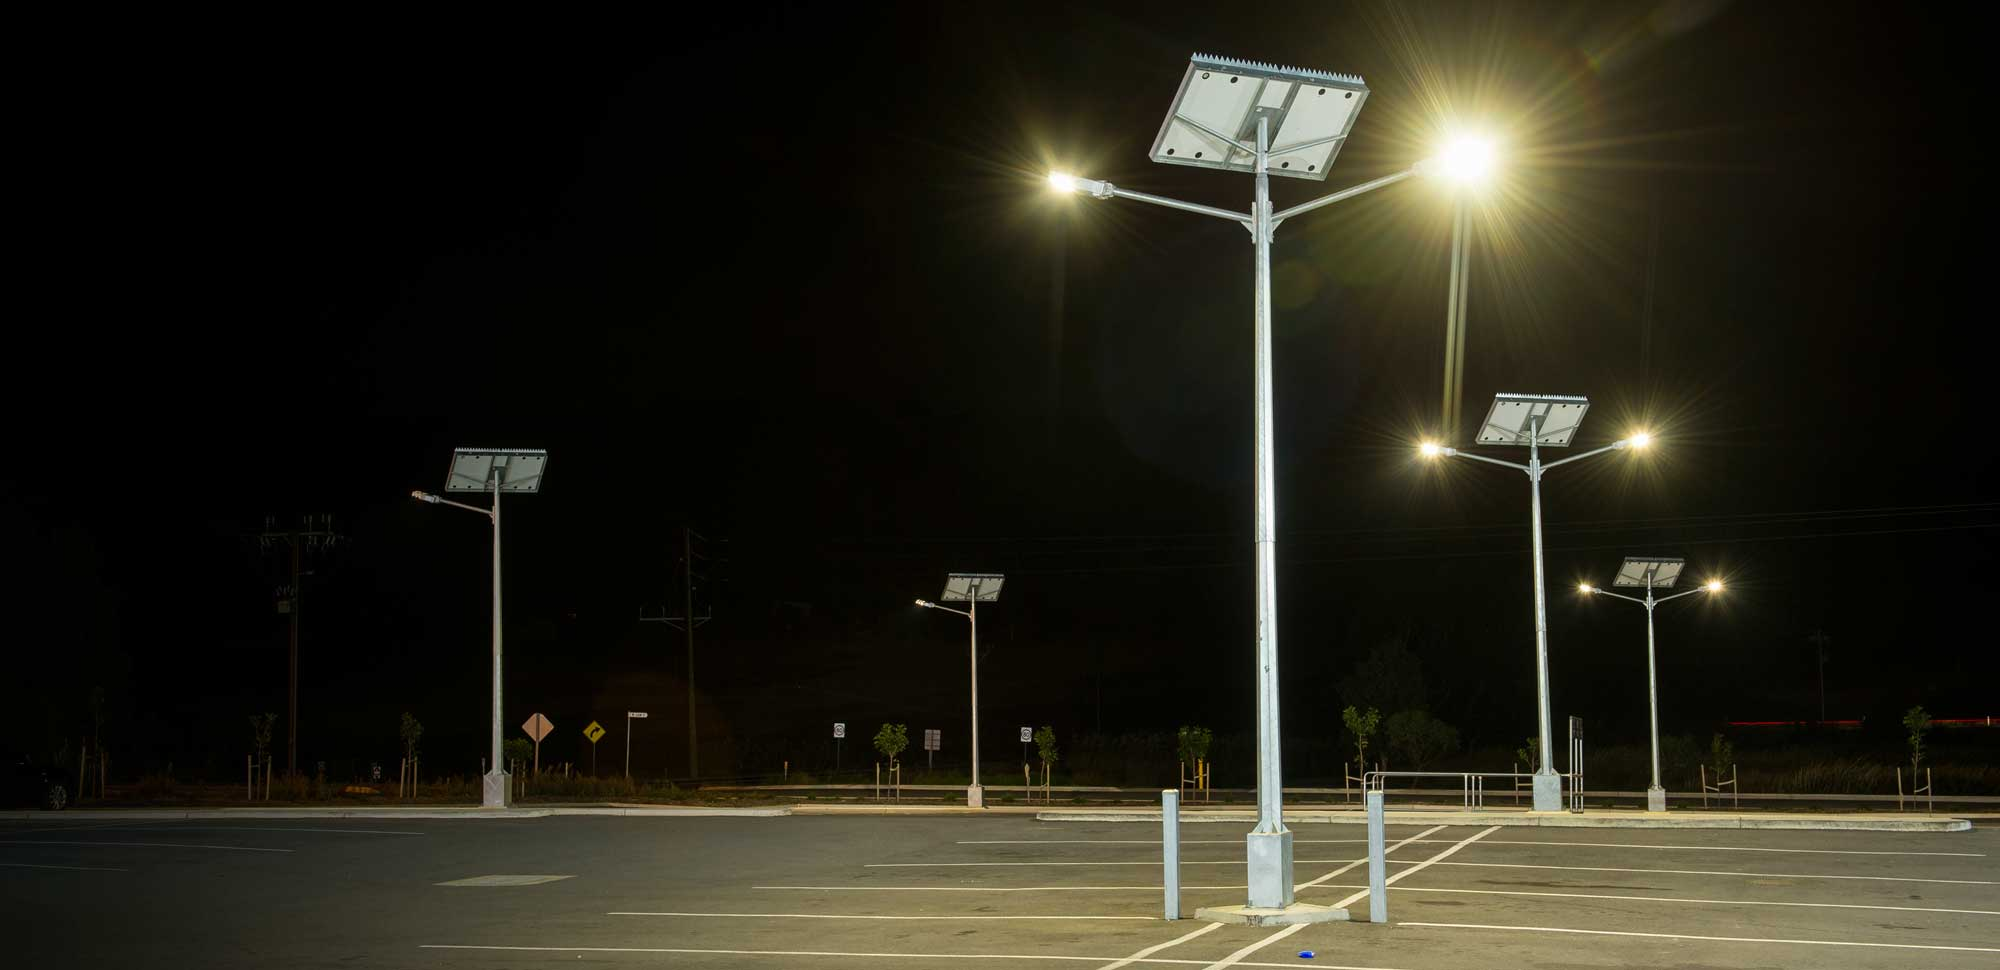 Can I Retrofit Solar Lighting to an Existing Pole?